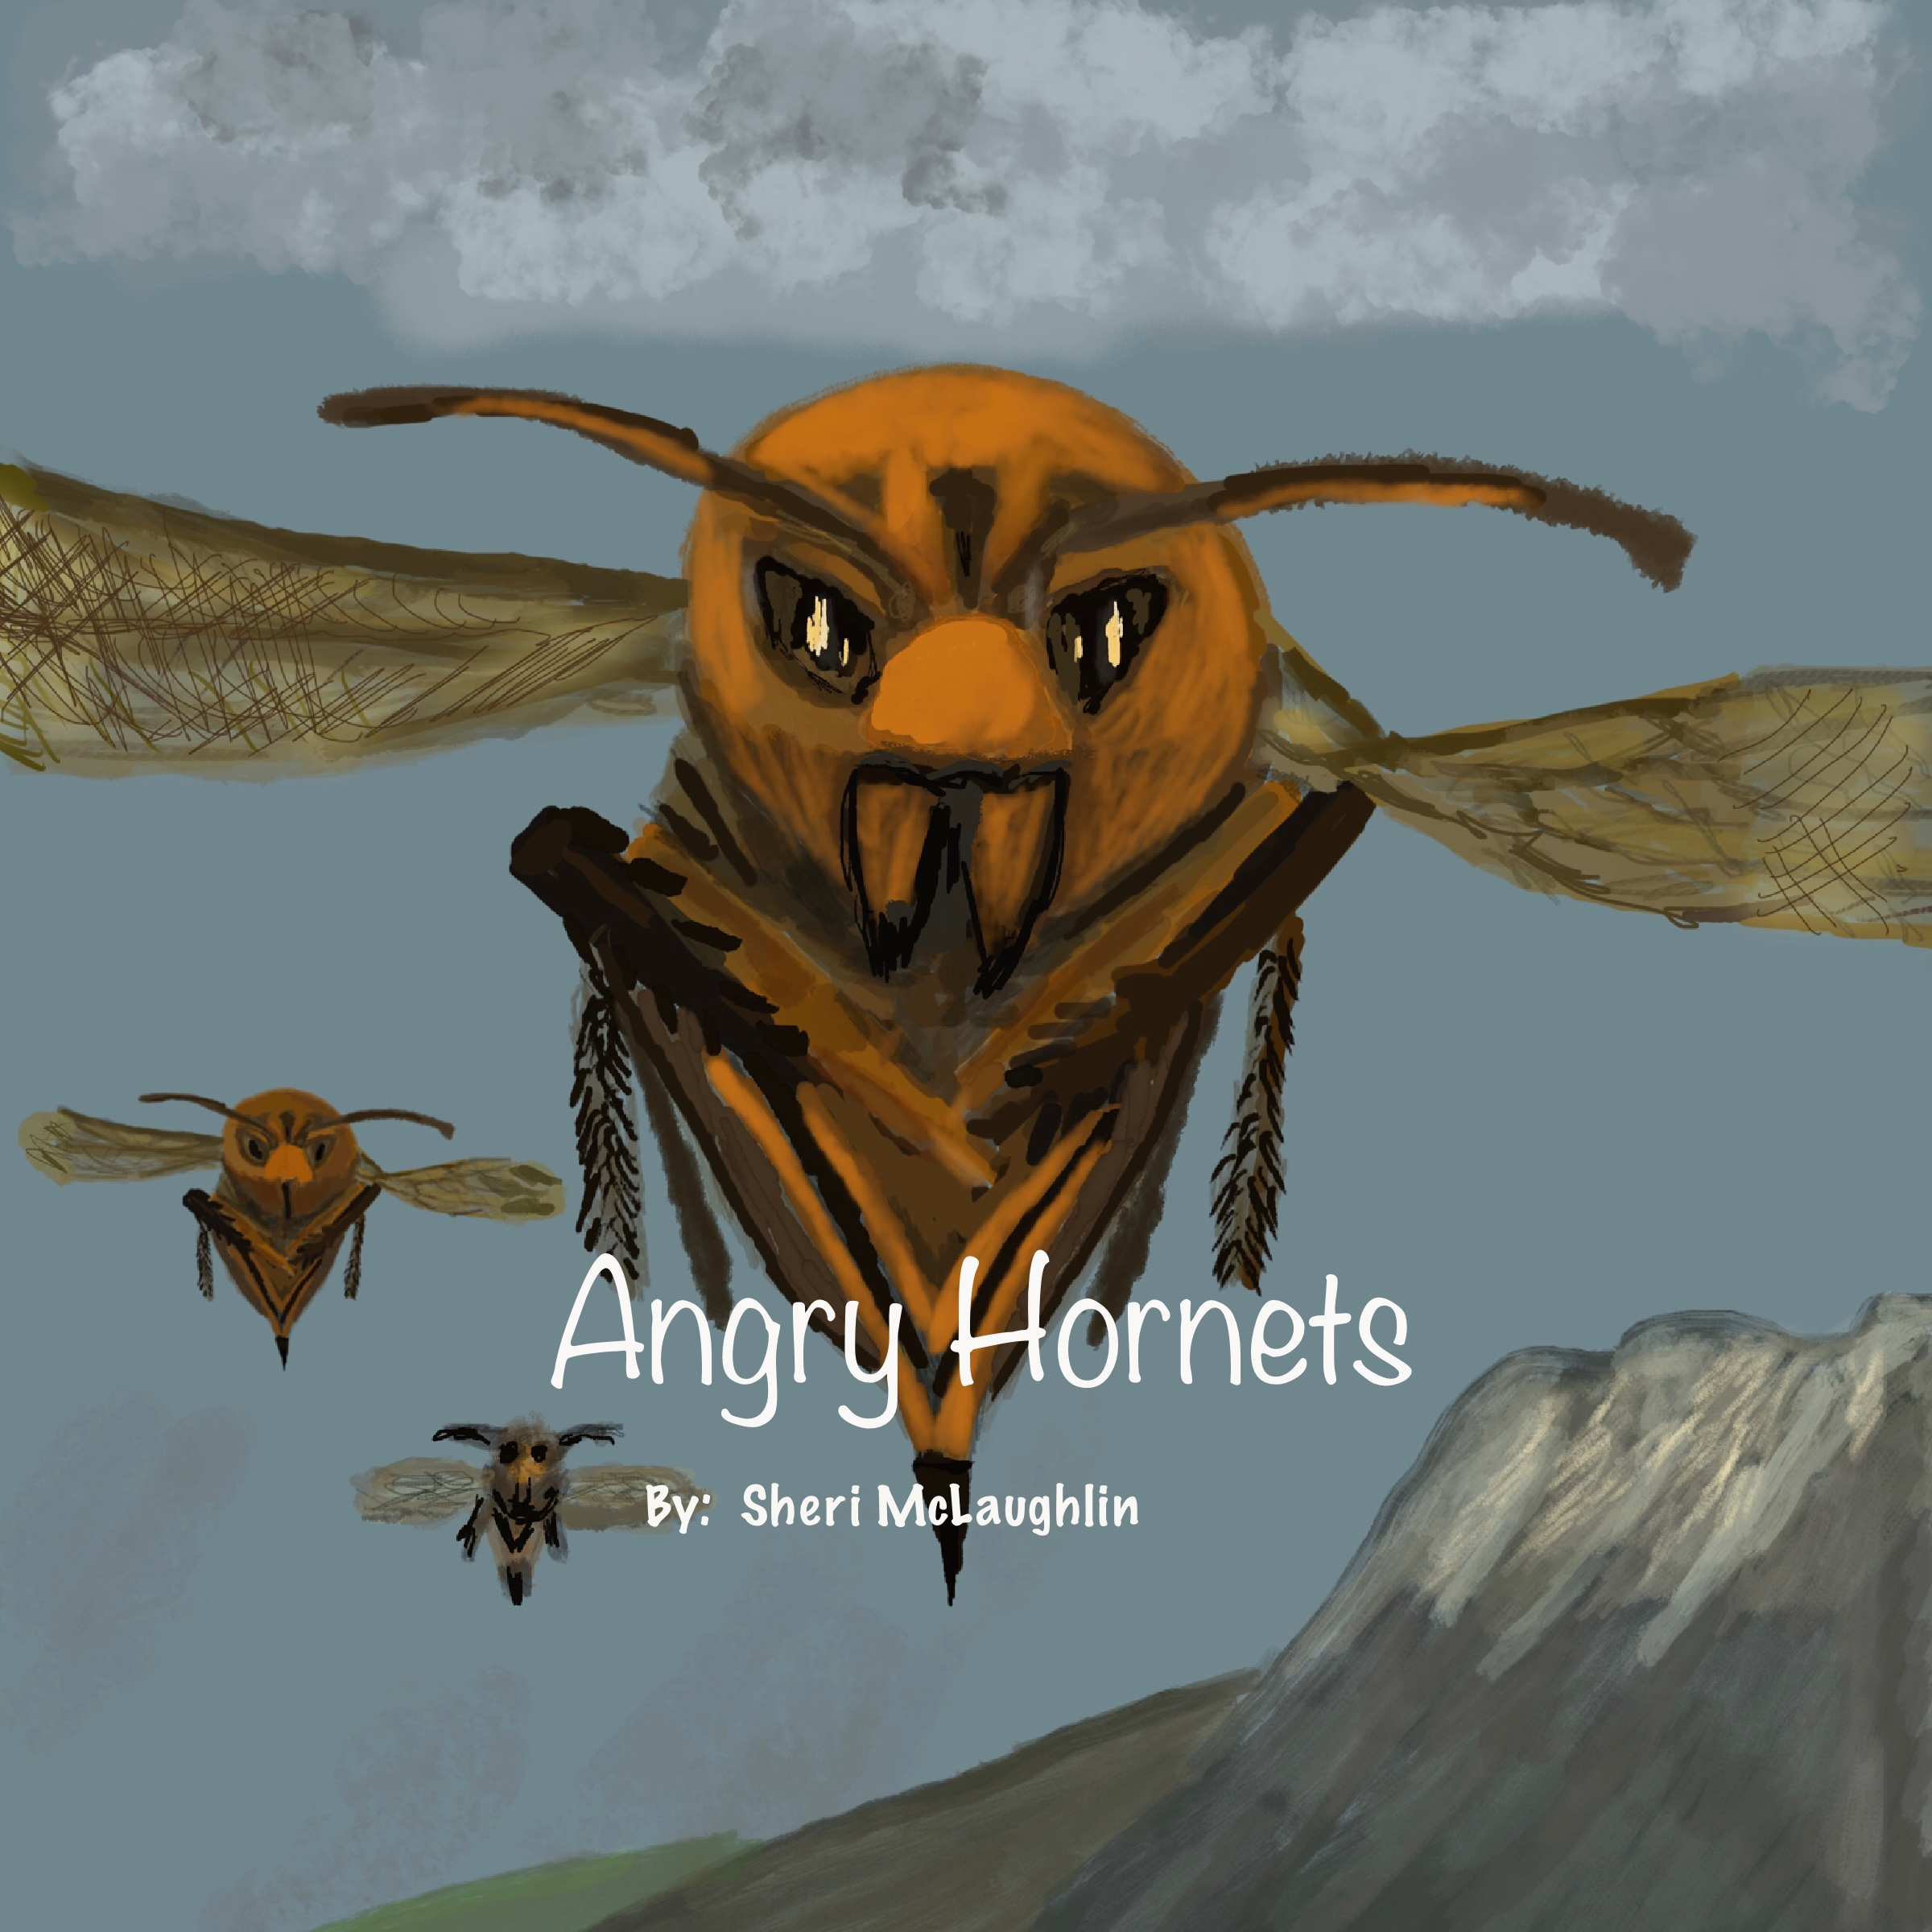 Angry Hornets: An Uplifting Yet Terrifying Story